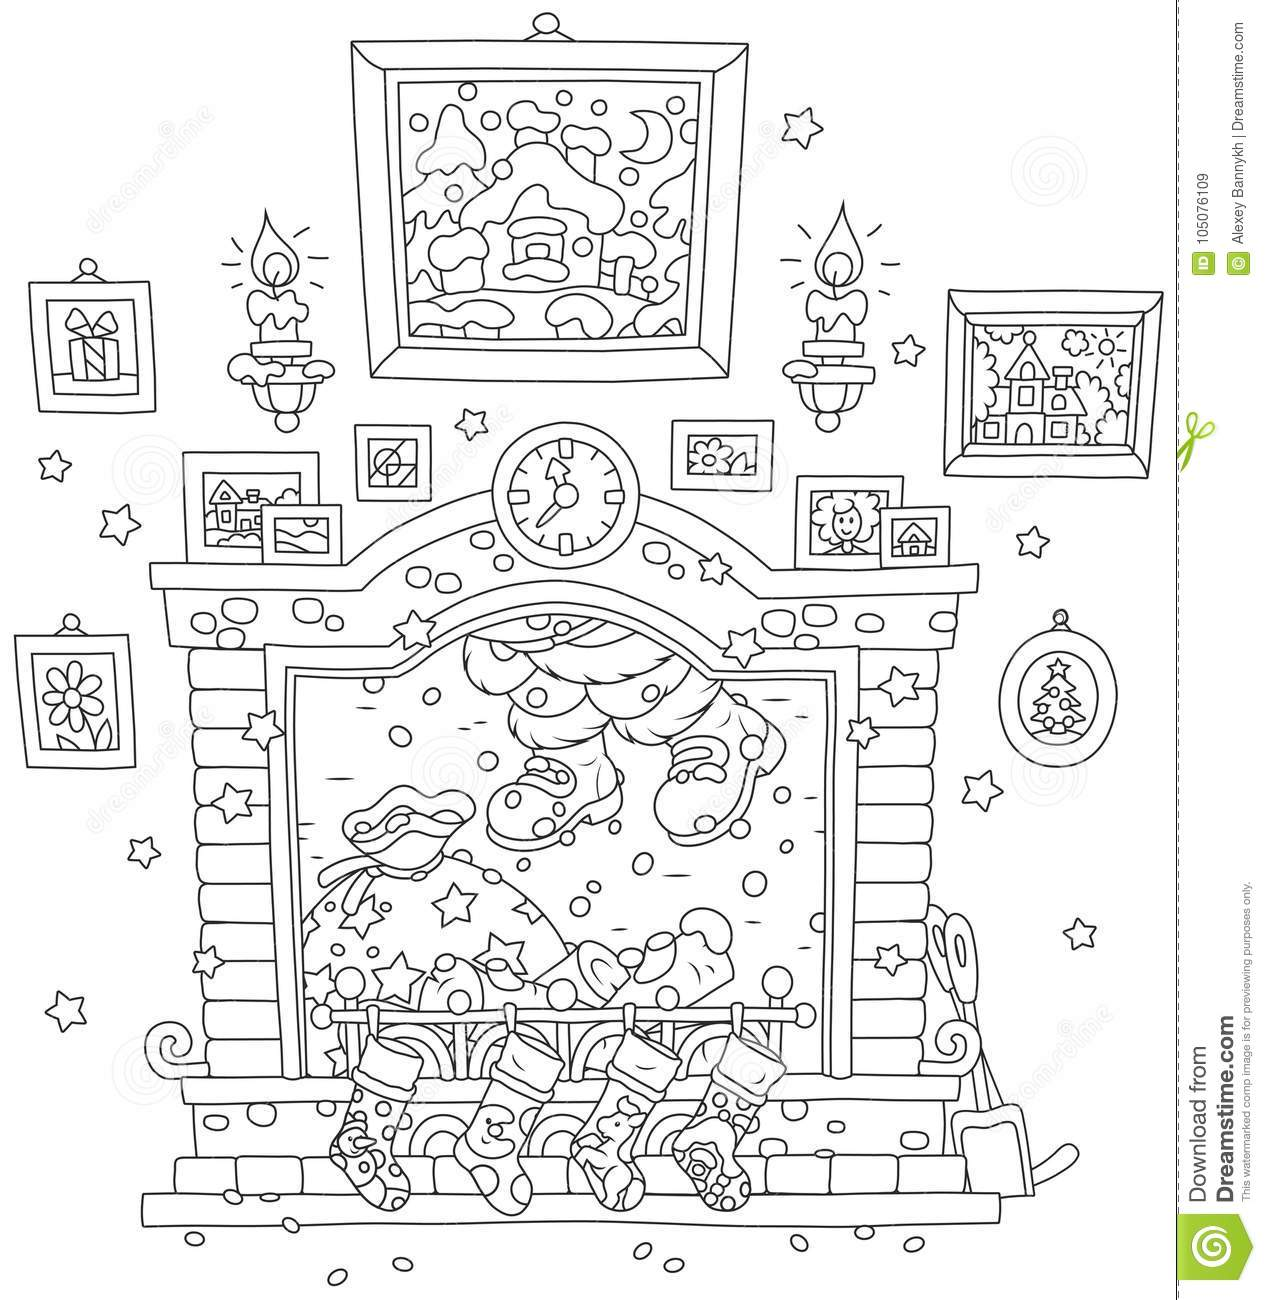 Wondrous Santa Coming Down The Chimney Stock Vector Illustration Of Download Free Architecture Designs Rallybritishbridgeorg